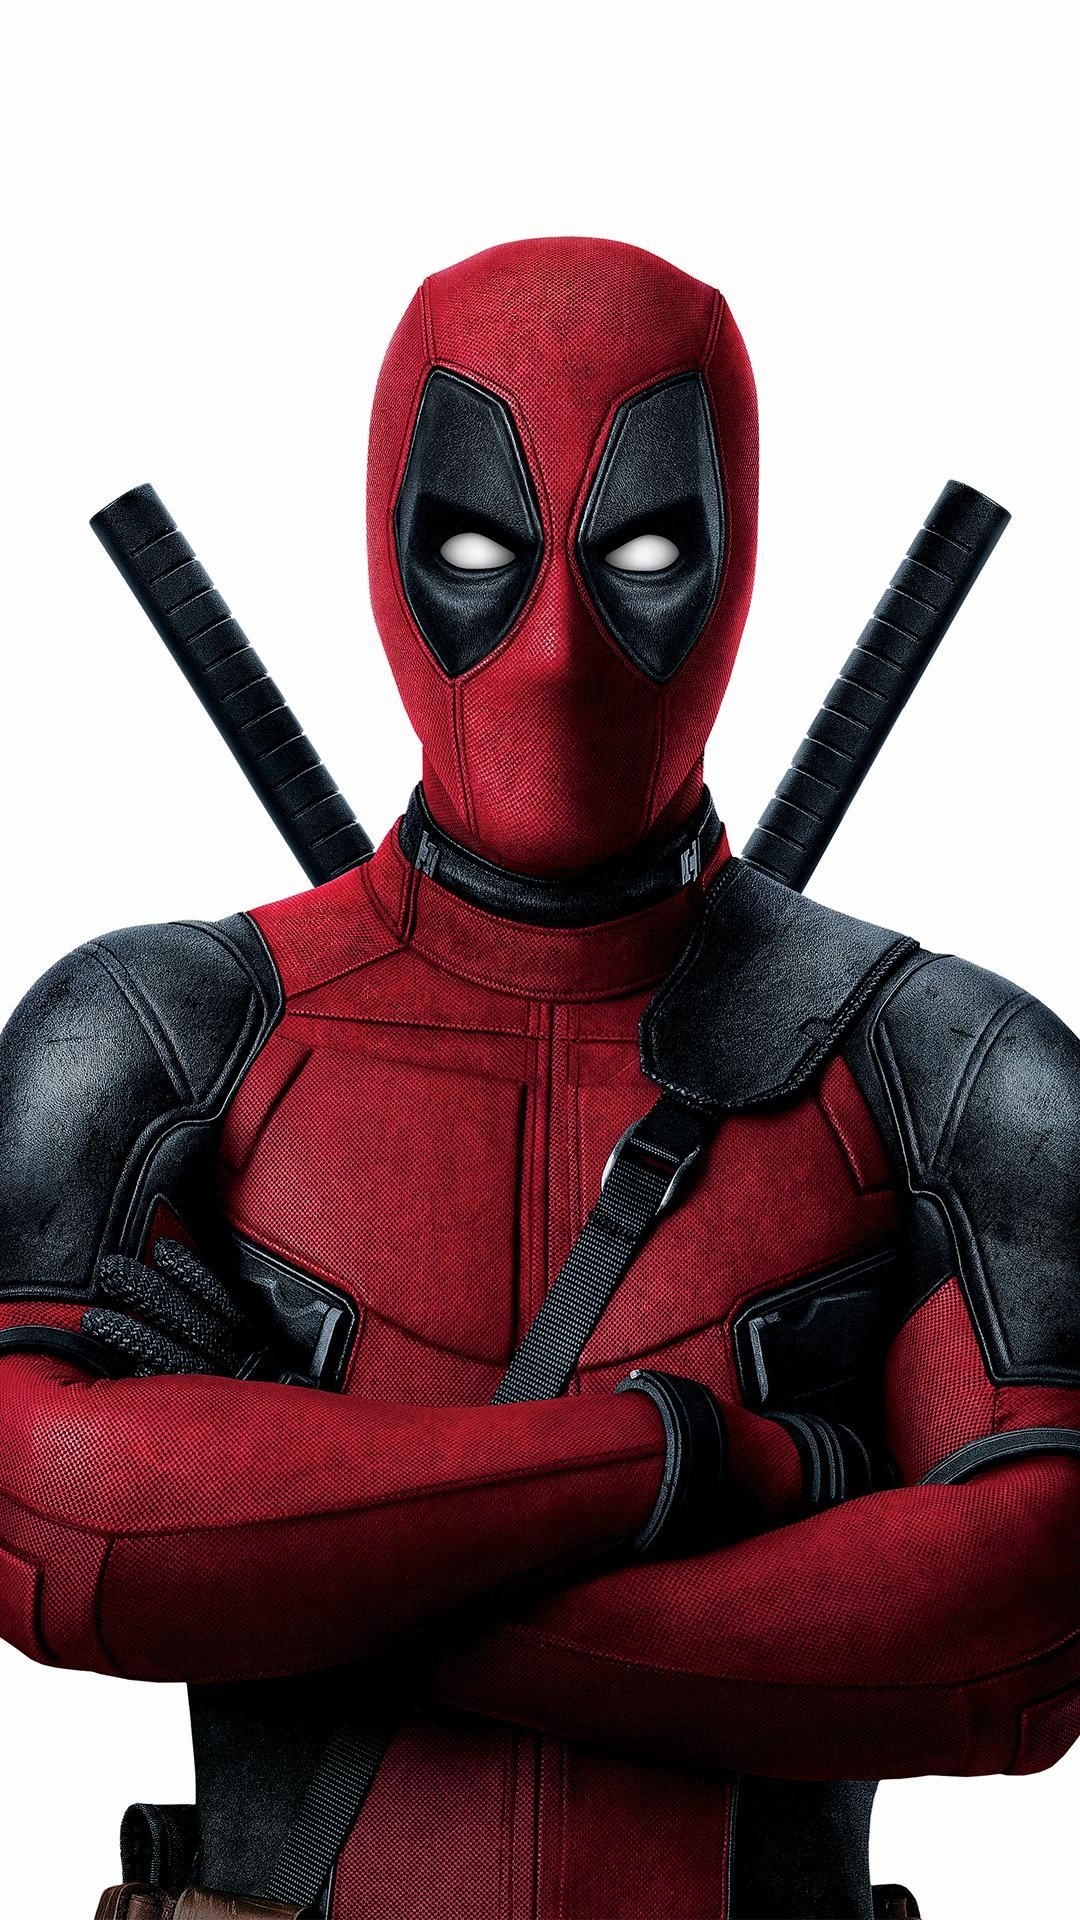 20 High Res Deadpool Wallpaper Iphone Pictures And Ideas On Meta